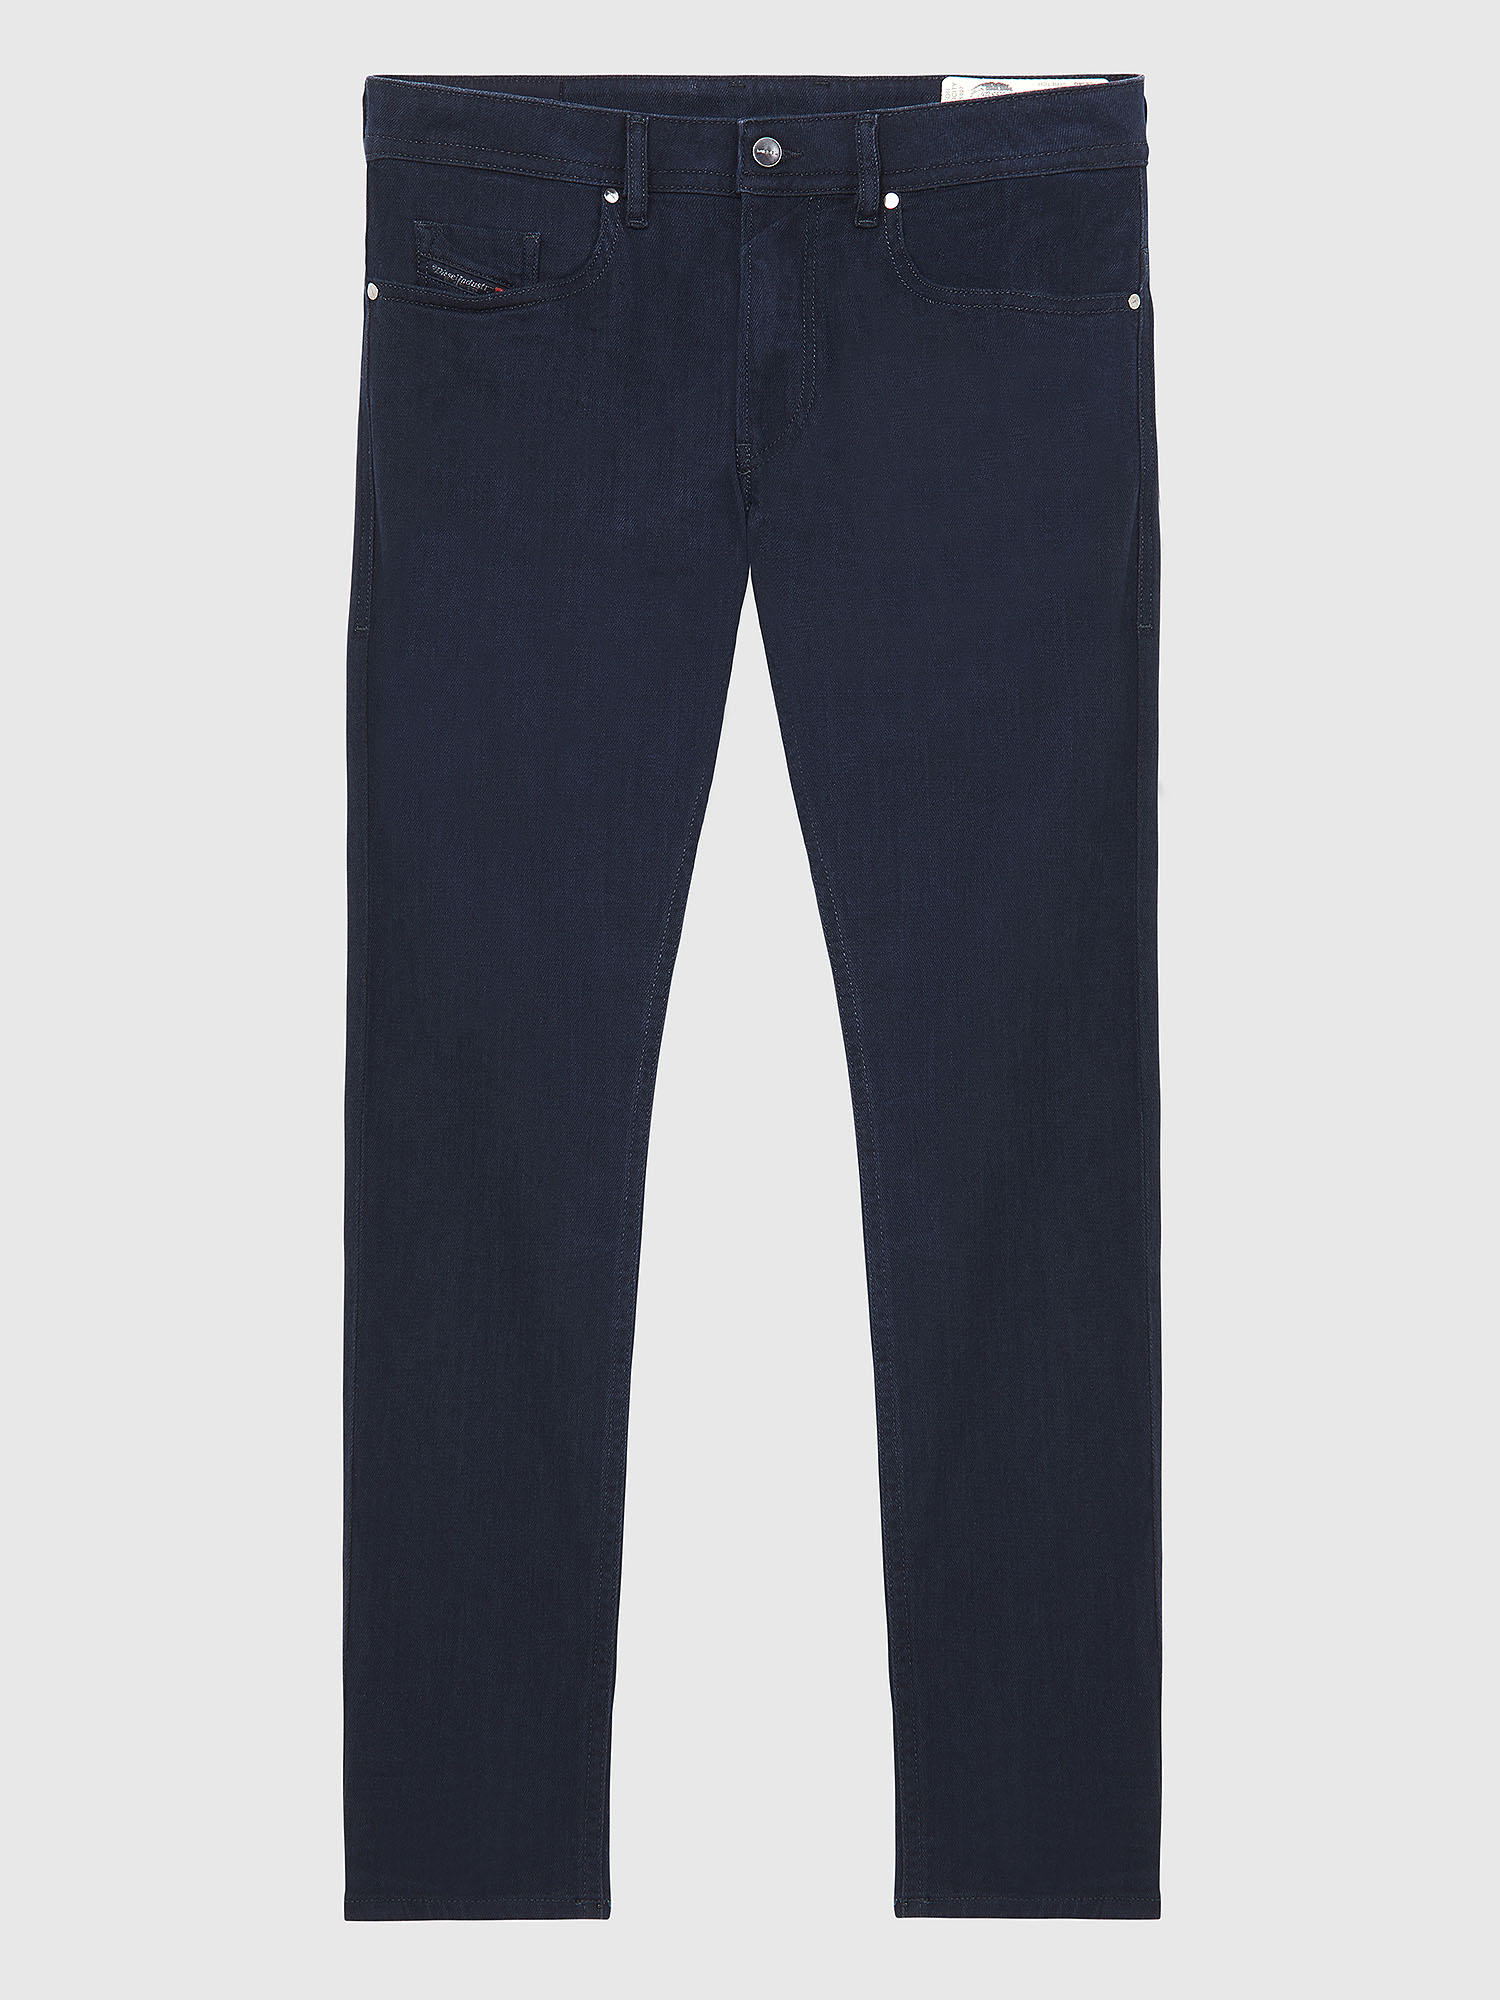 Diesel - Thommer 085AQ,  - Jeans - Image 1